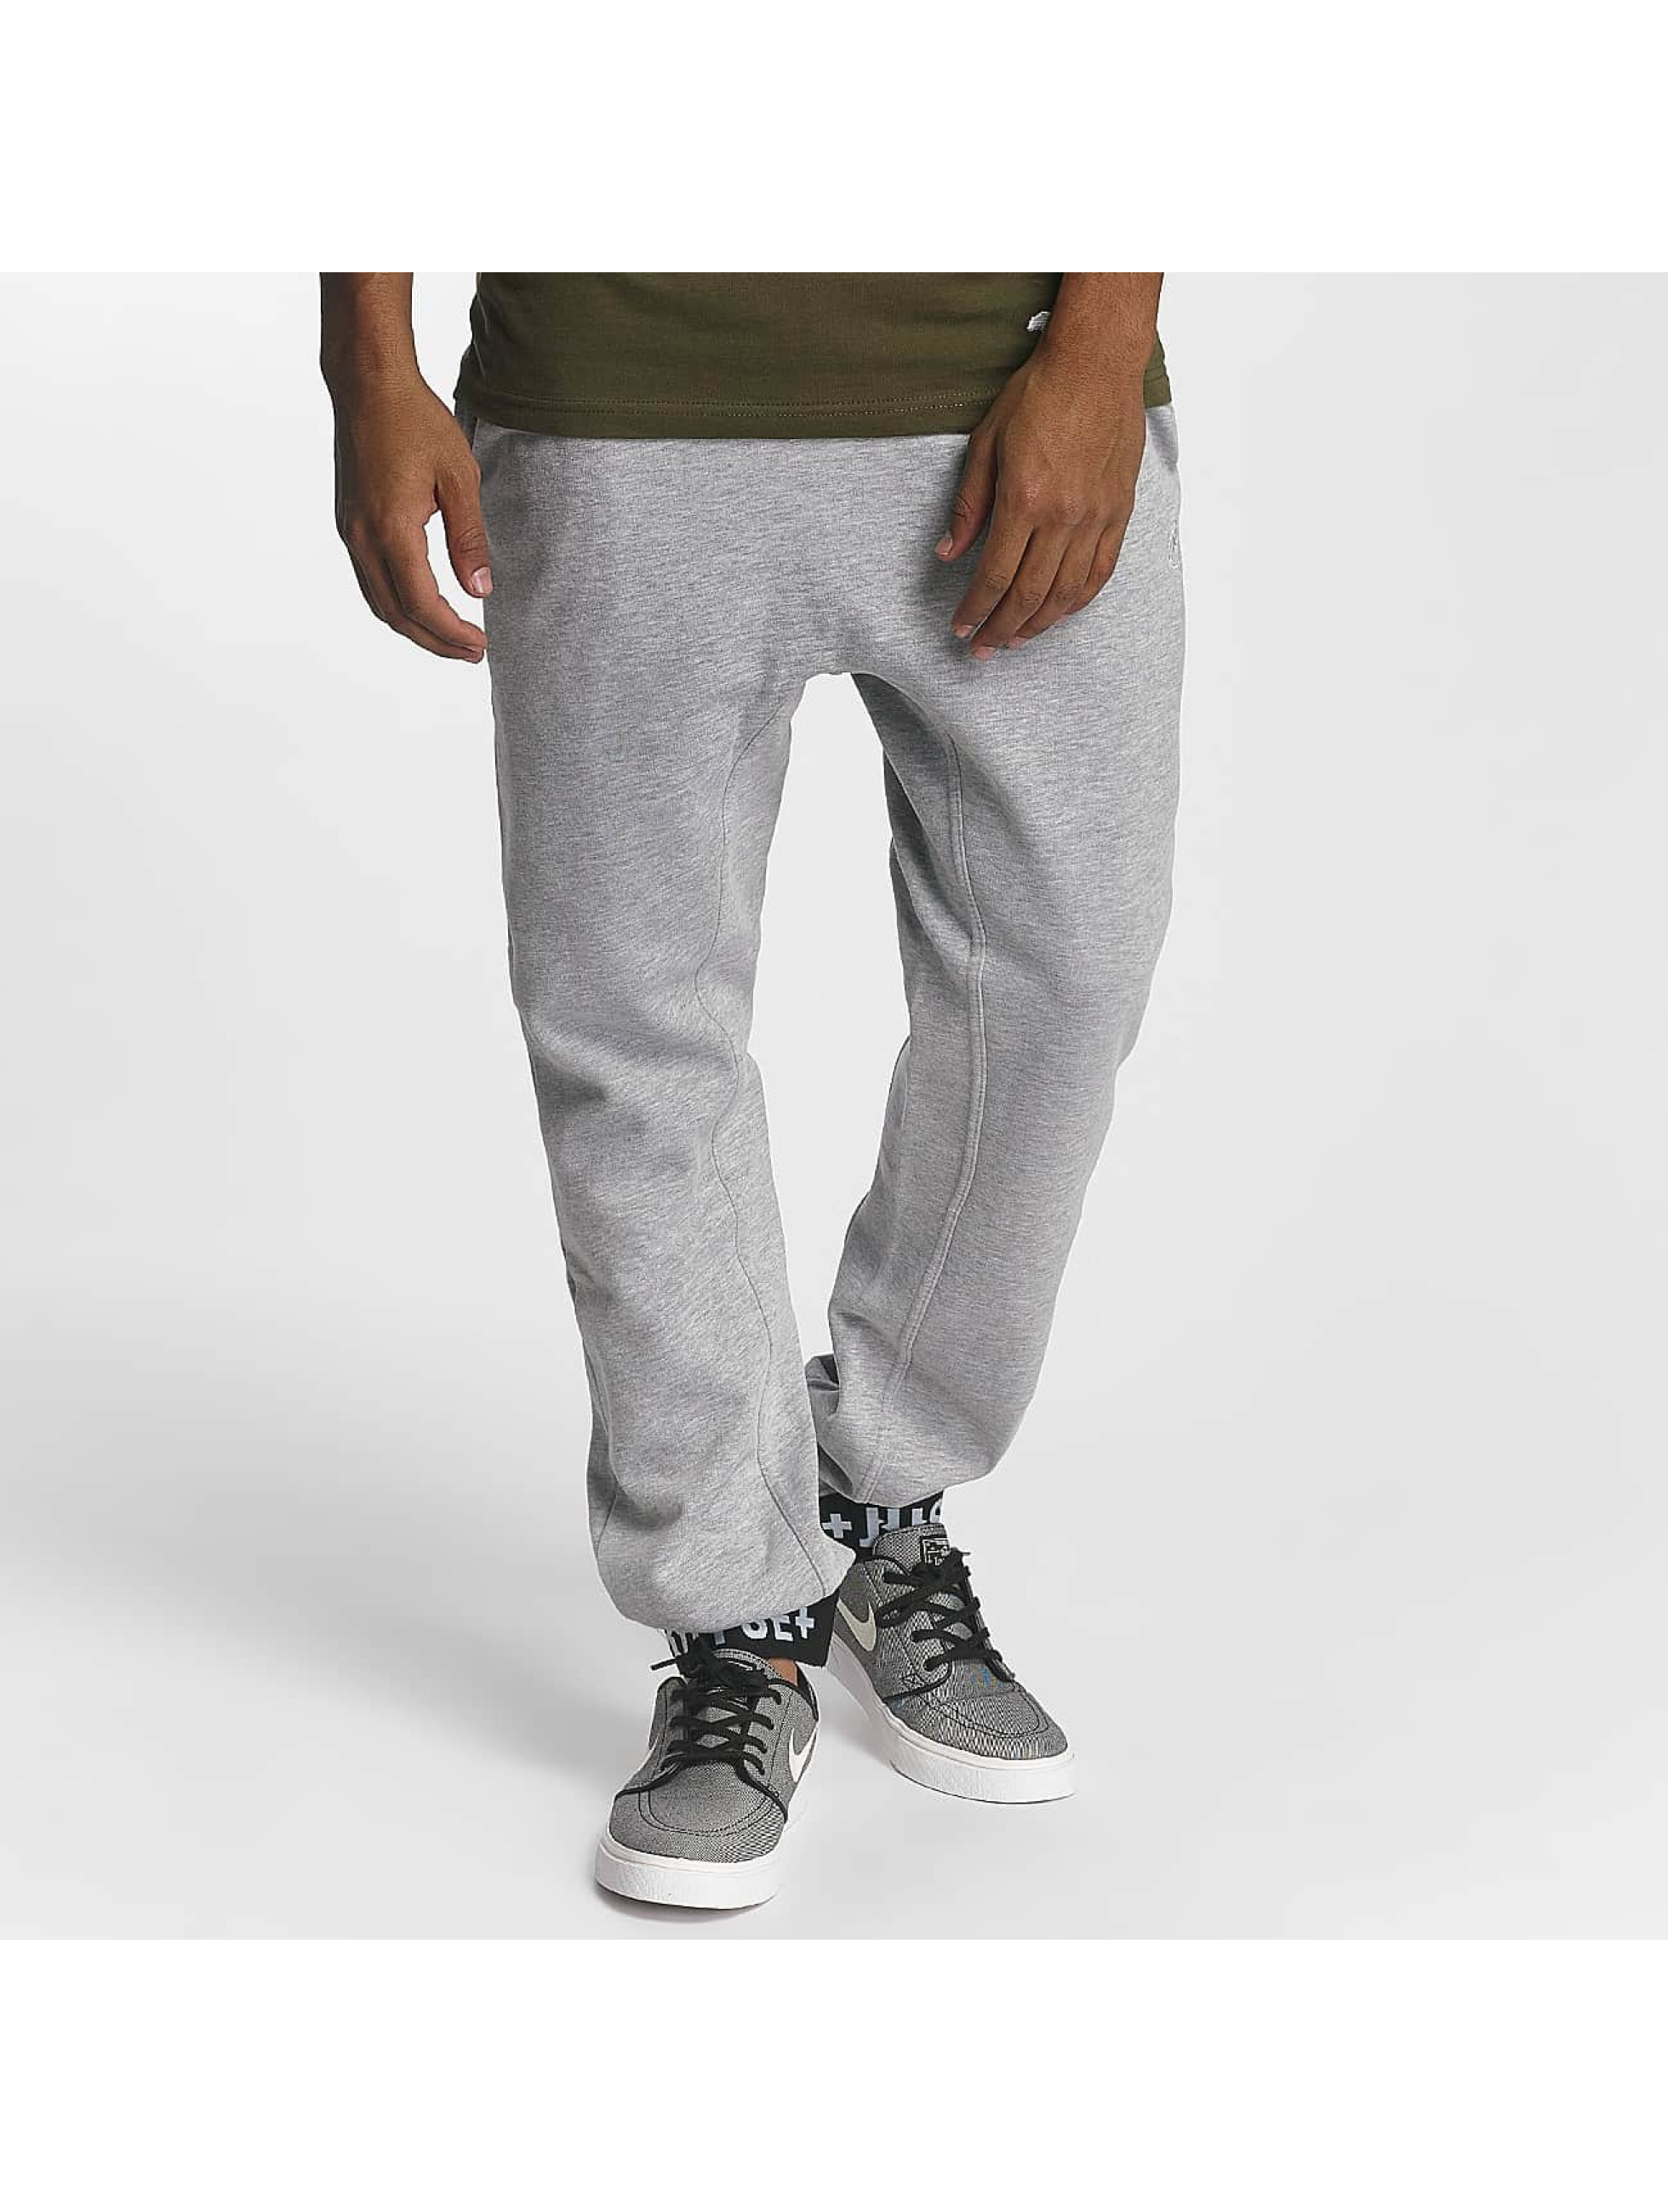 Just Rhyse / Sweat Pant Cottonwood in grey S